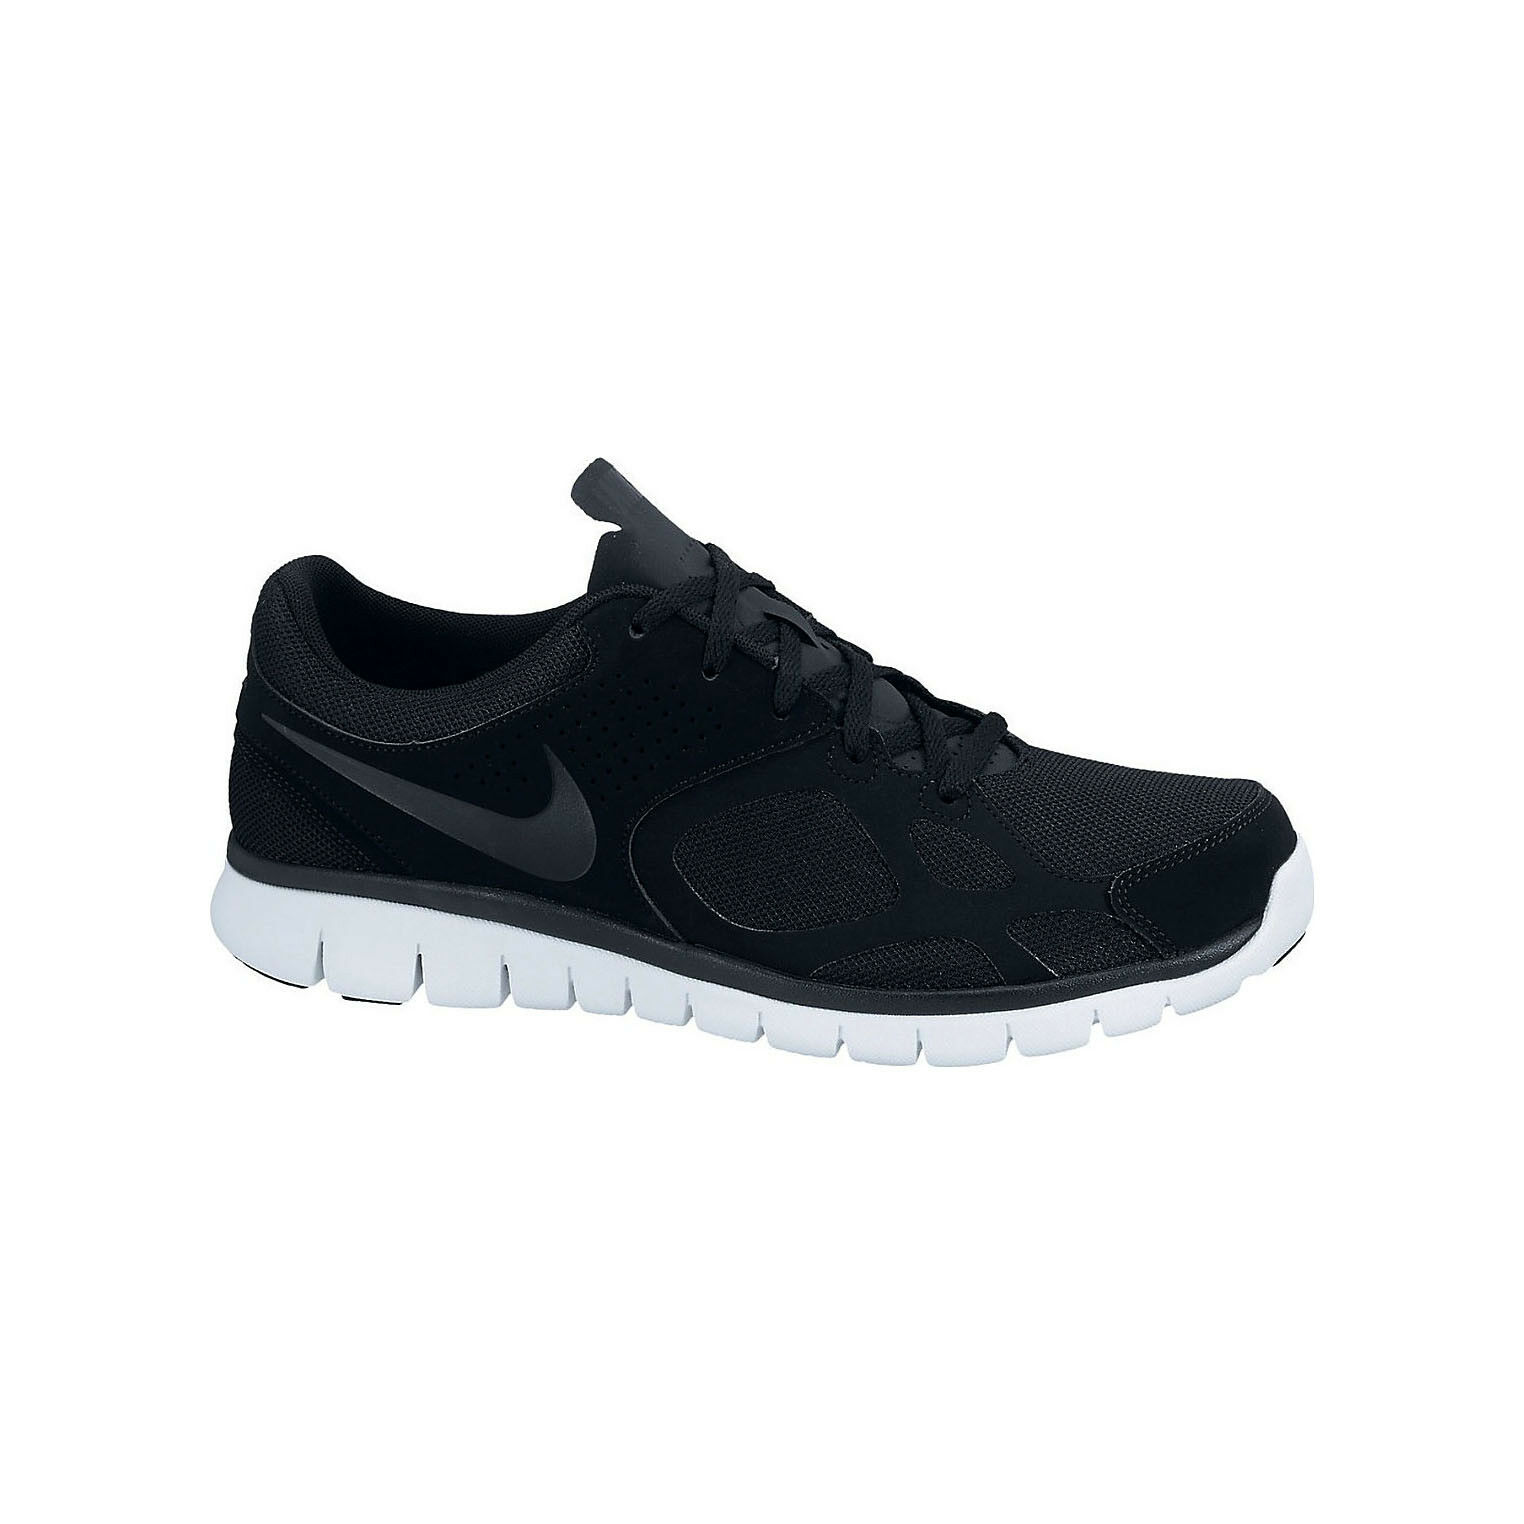 d914dbd4a02 New Original Nike Nike Nike Flex 2012 EXT Black White Running Shoes for Men  Trainers NIB